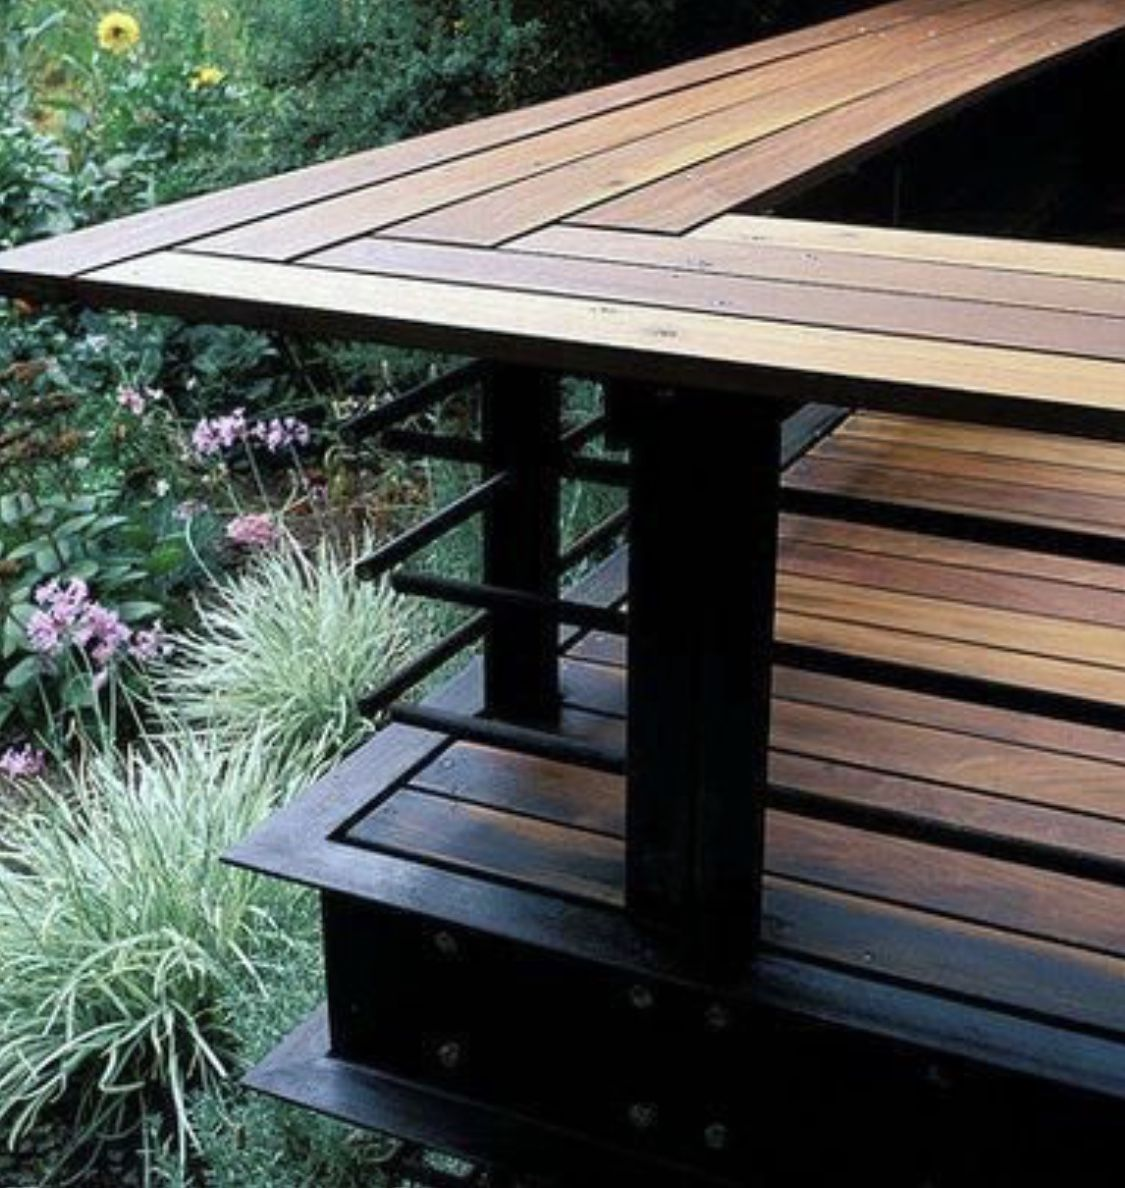 I Love This Steel And Color These Are I Also Love The Japenese Torch Cladding Look Or Otherwise Known Deck Railing Design Deck Designs Backyard Decks Backyard